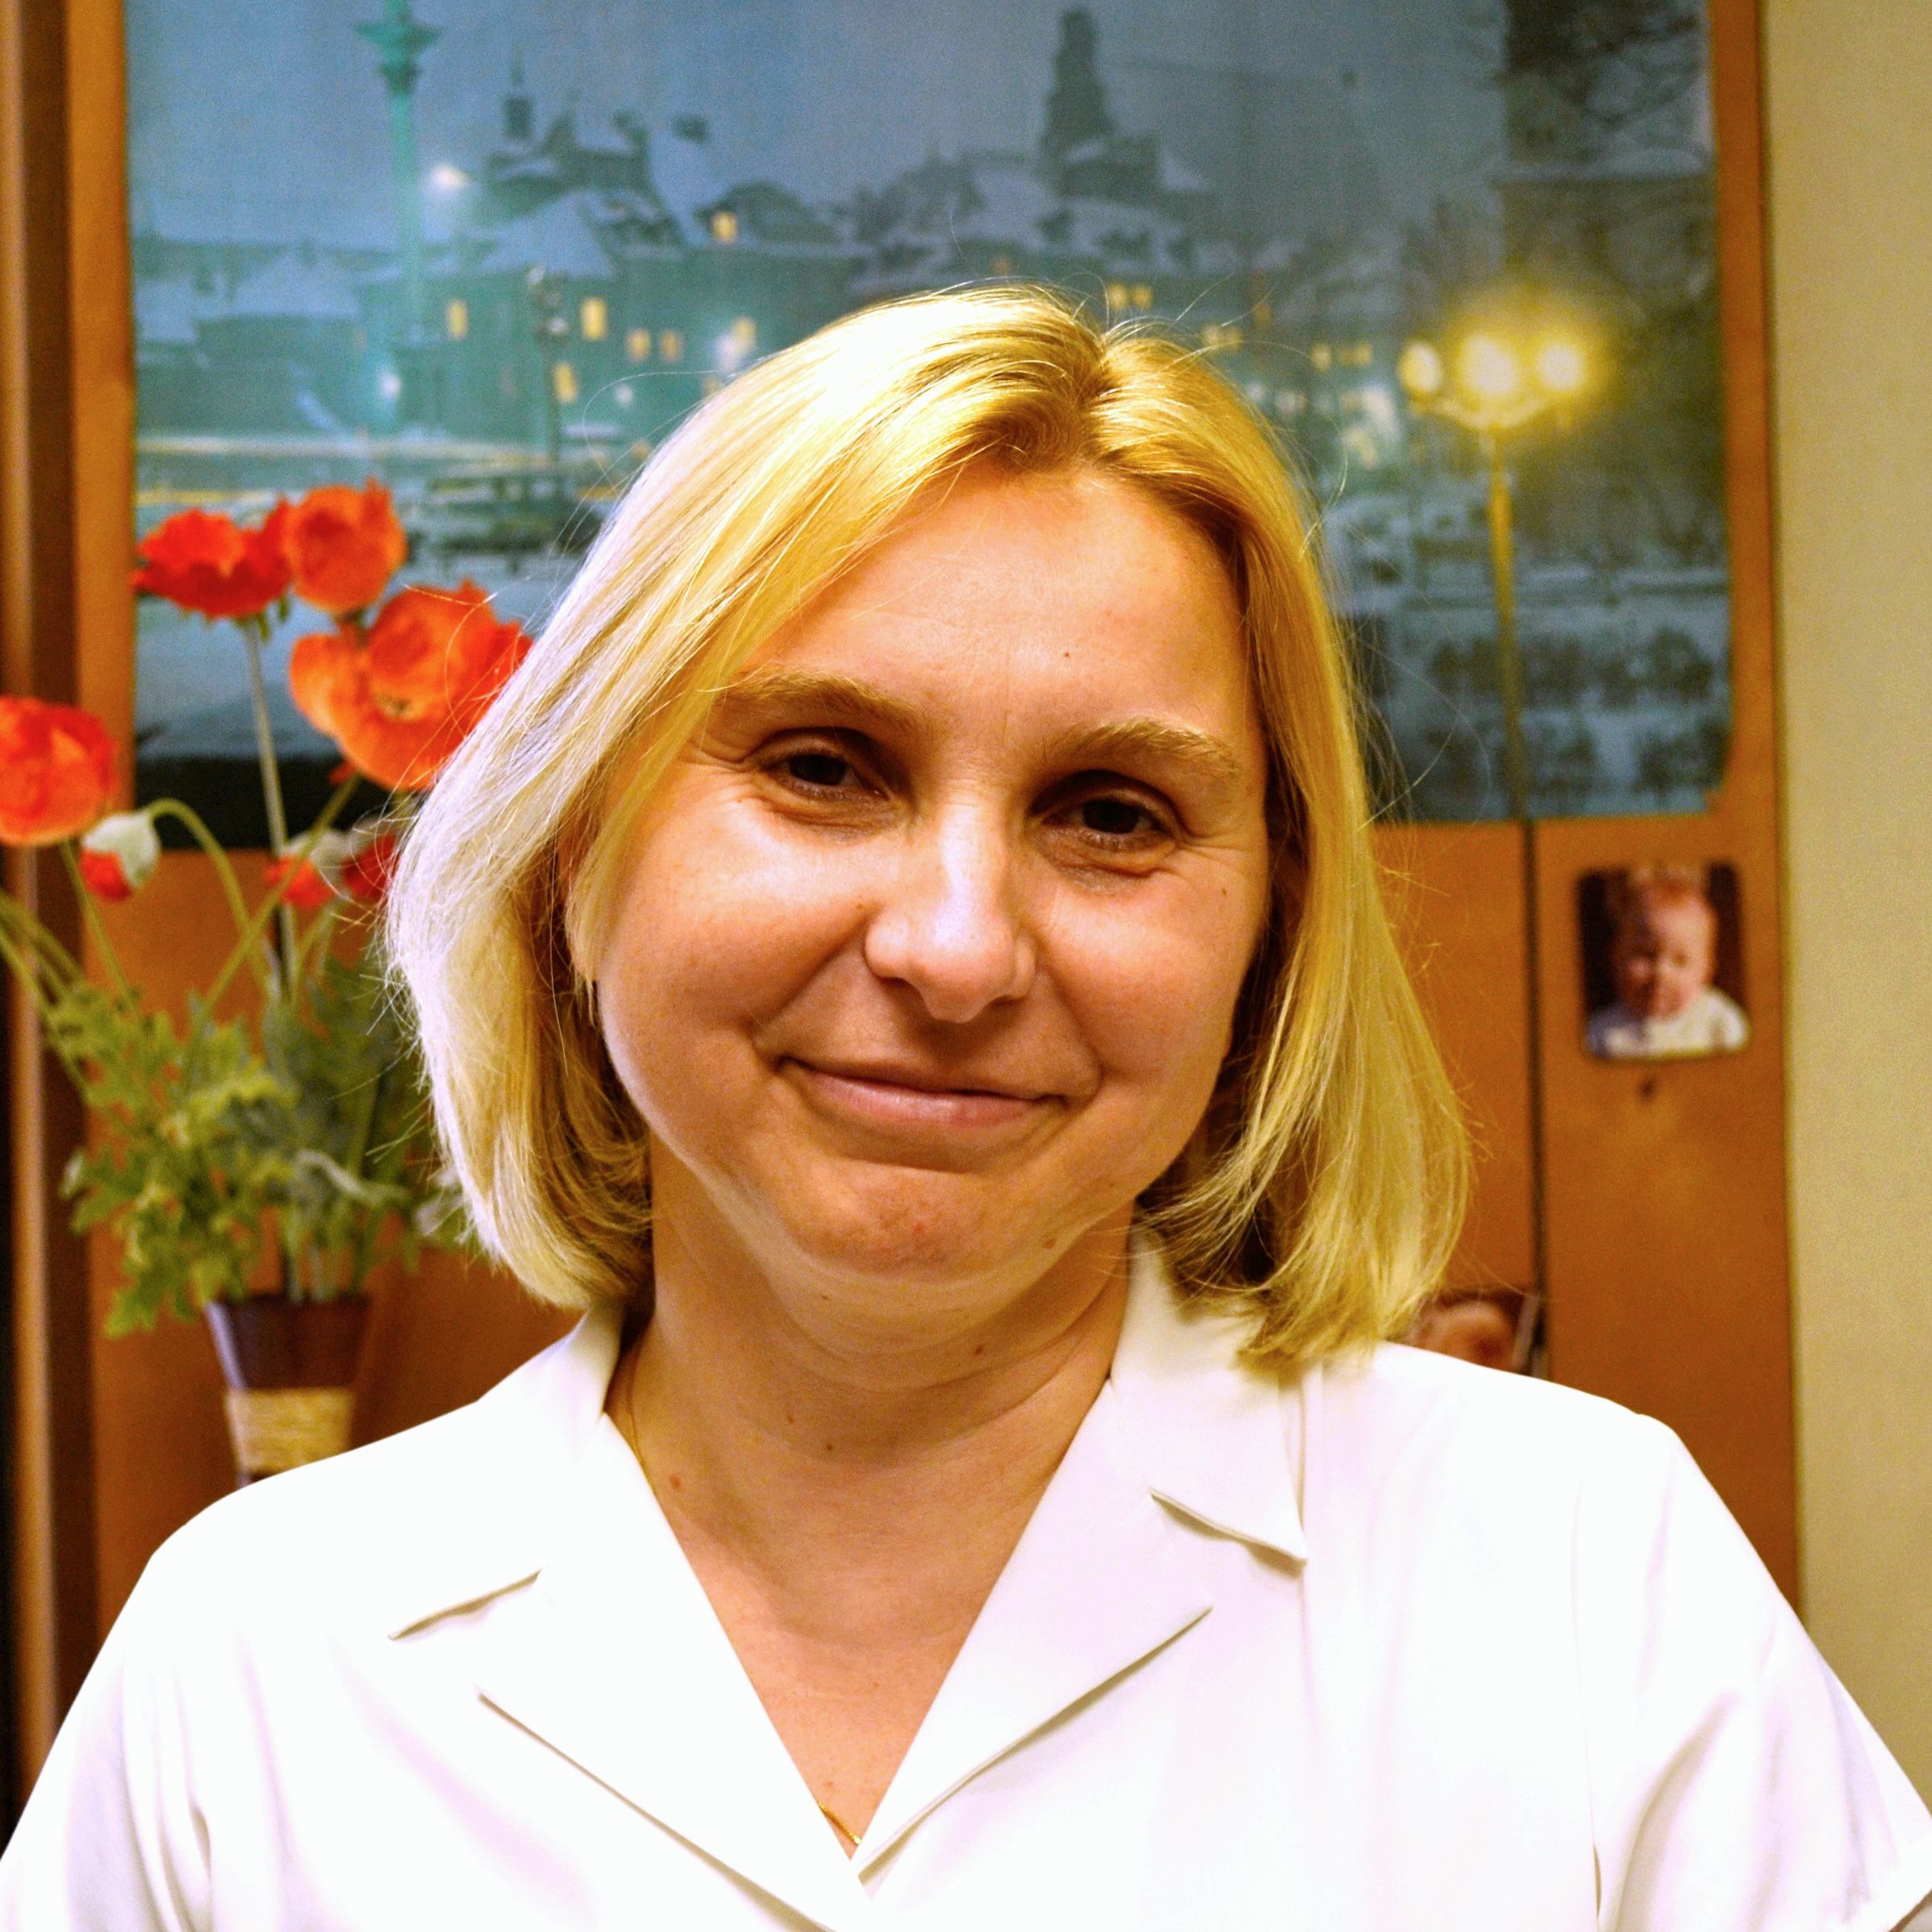 Headshot of Joanna Kitlinska in her office